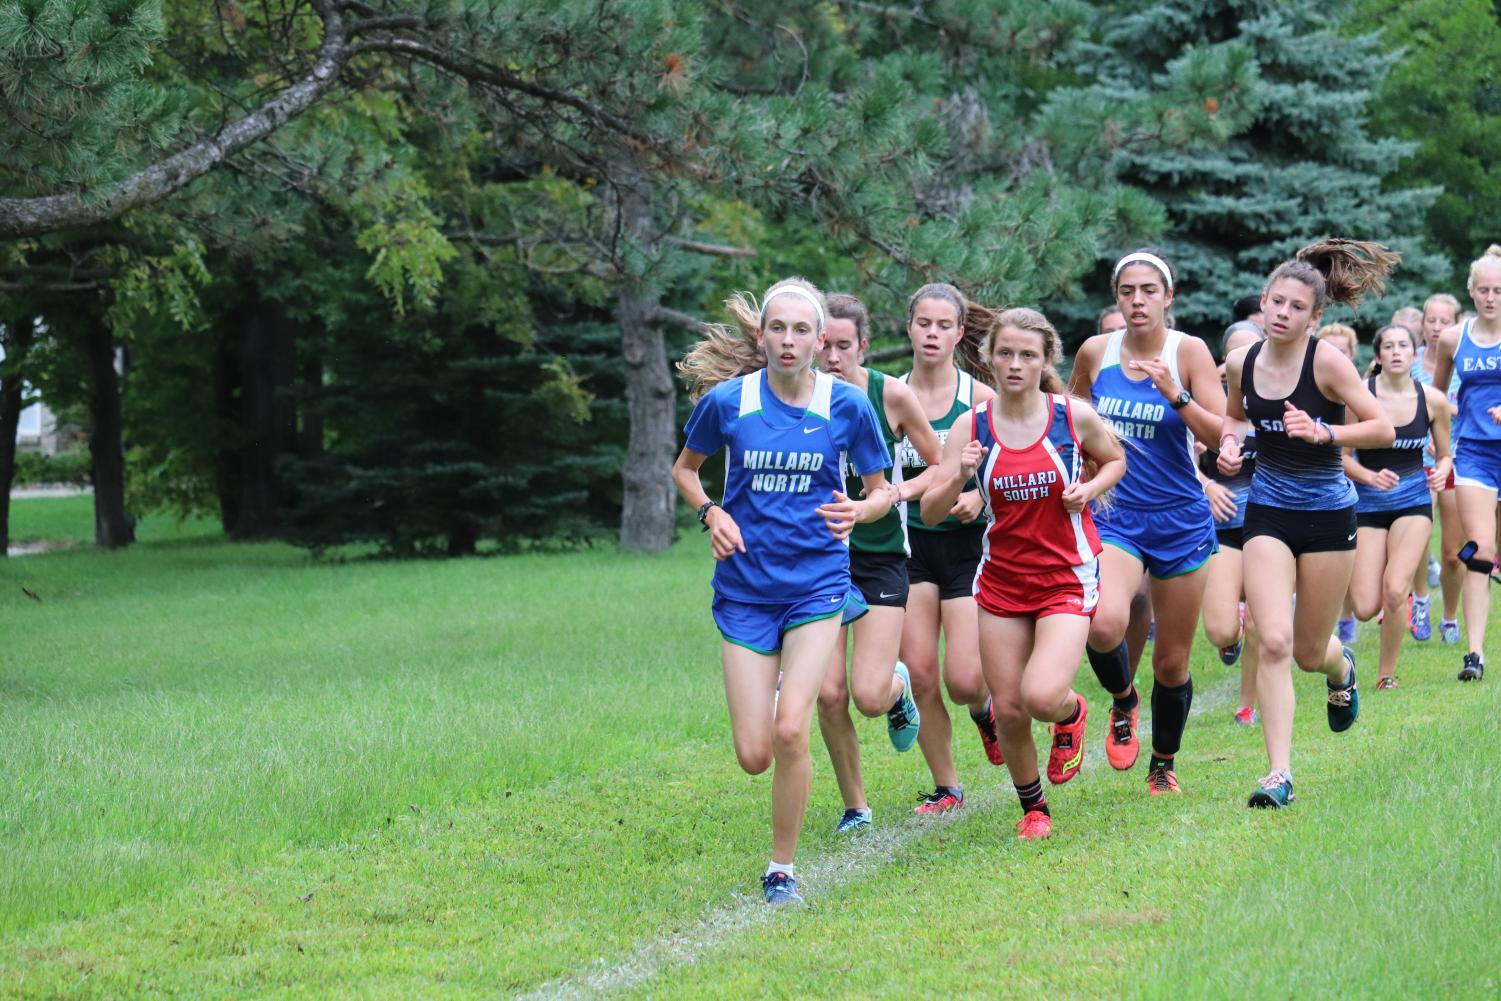 Sophomore Allison Louthan leads the pack of runners at the Millard South  Invitational on Sept.7. Individually, Louthan placed 4th overall at the meet, leading the team to an 8th place finish.